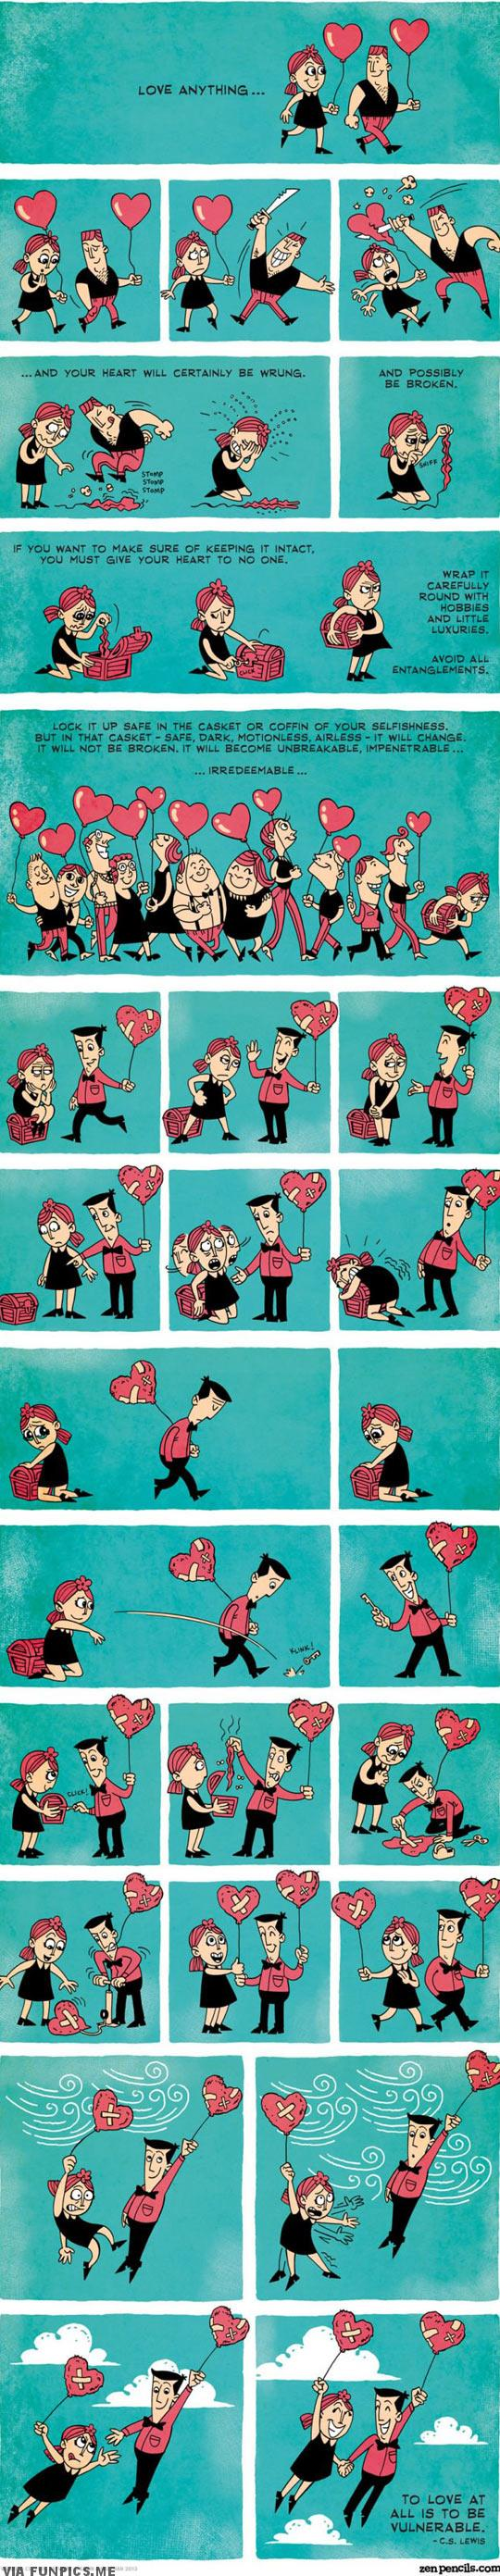 awesome How to mend the broken heart